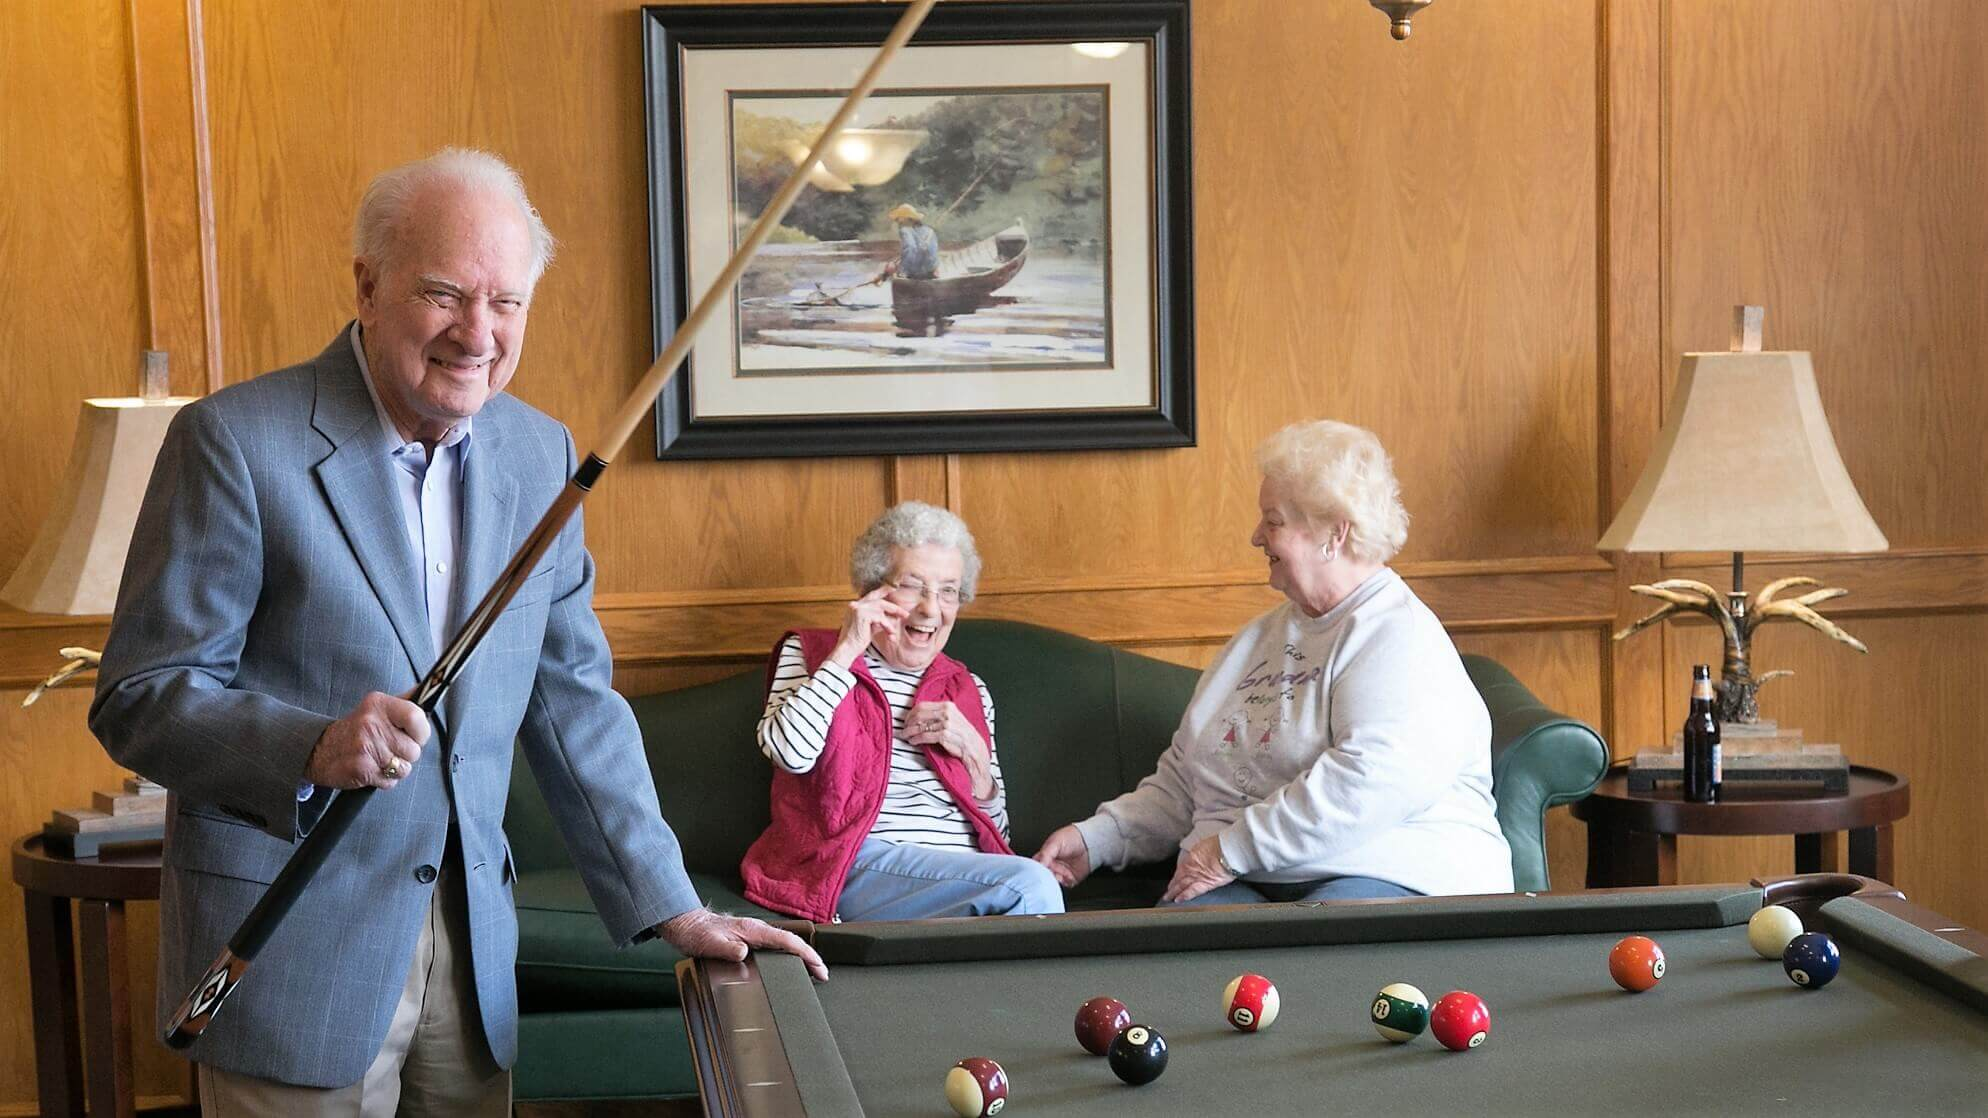 Happy senior friends laughing and playing billiards together.